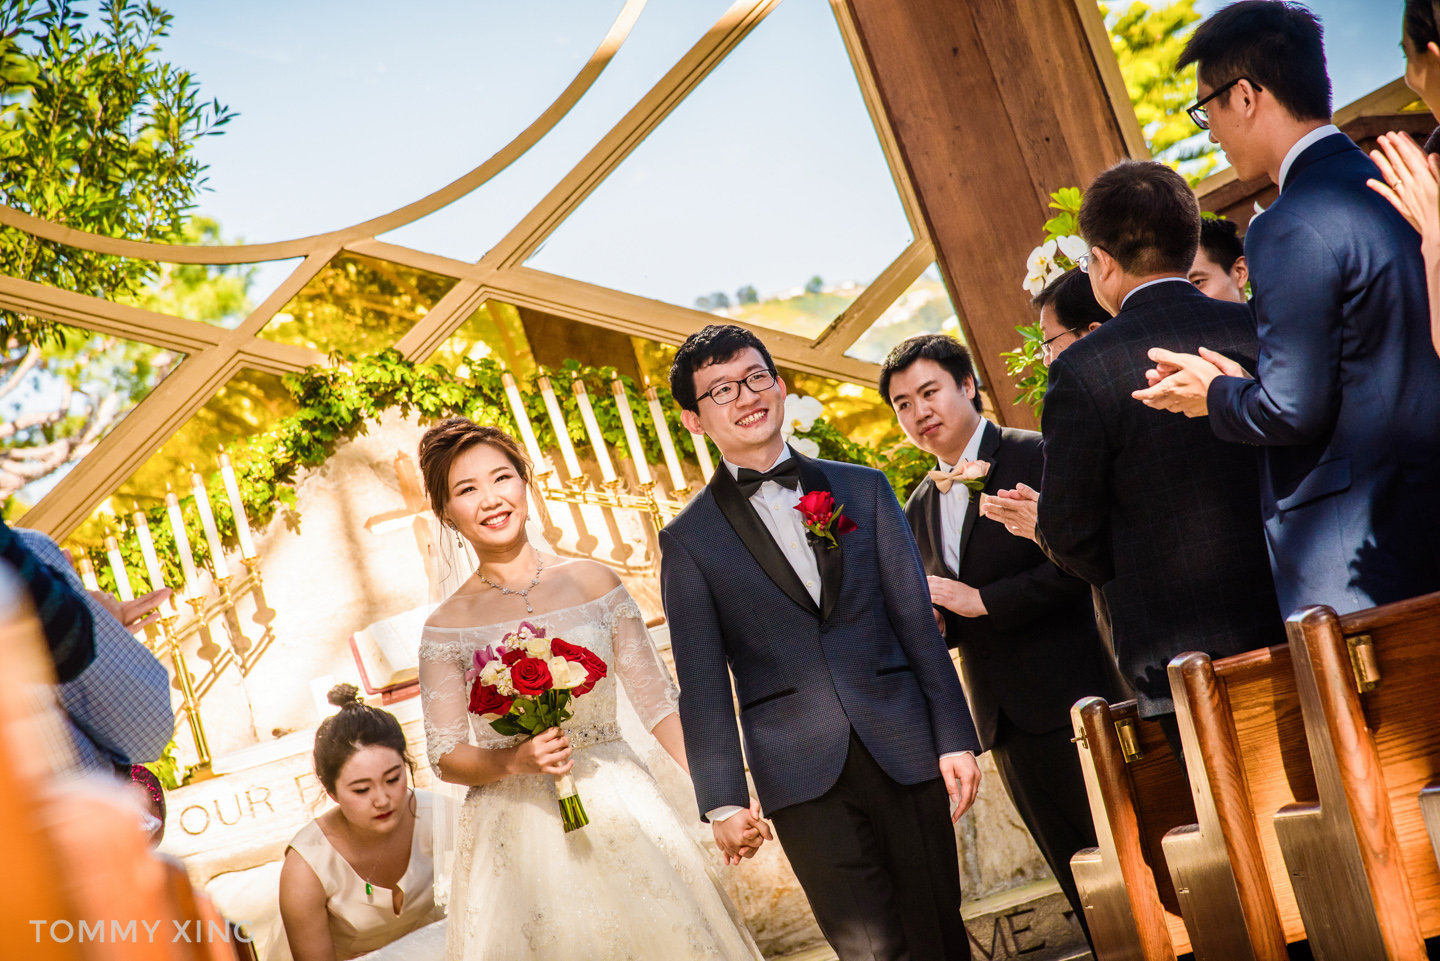 Los Angeles Wedding Photographer 洛杉矶婚礼婚纱摄影师 Tommy Xing-155.JPG